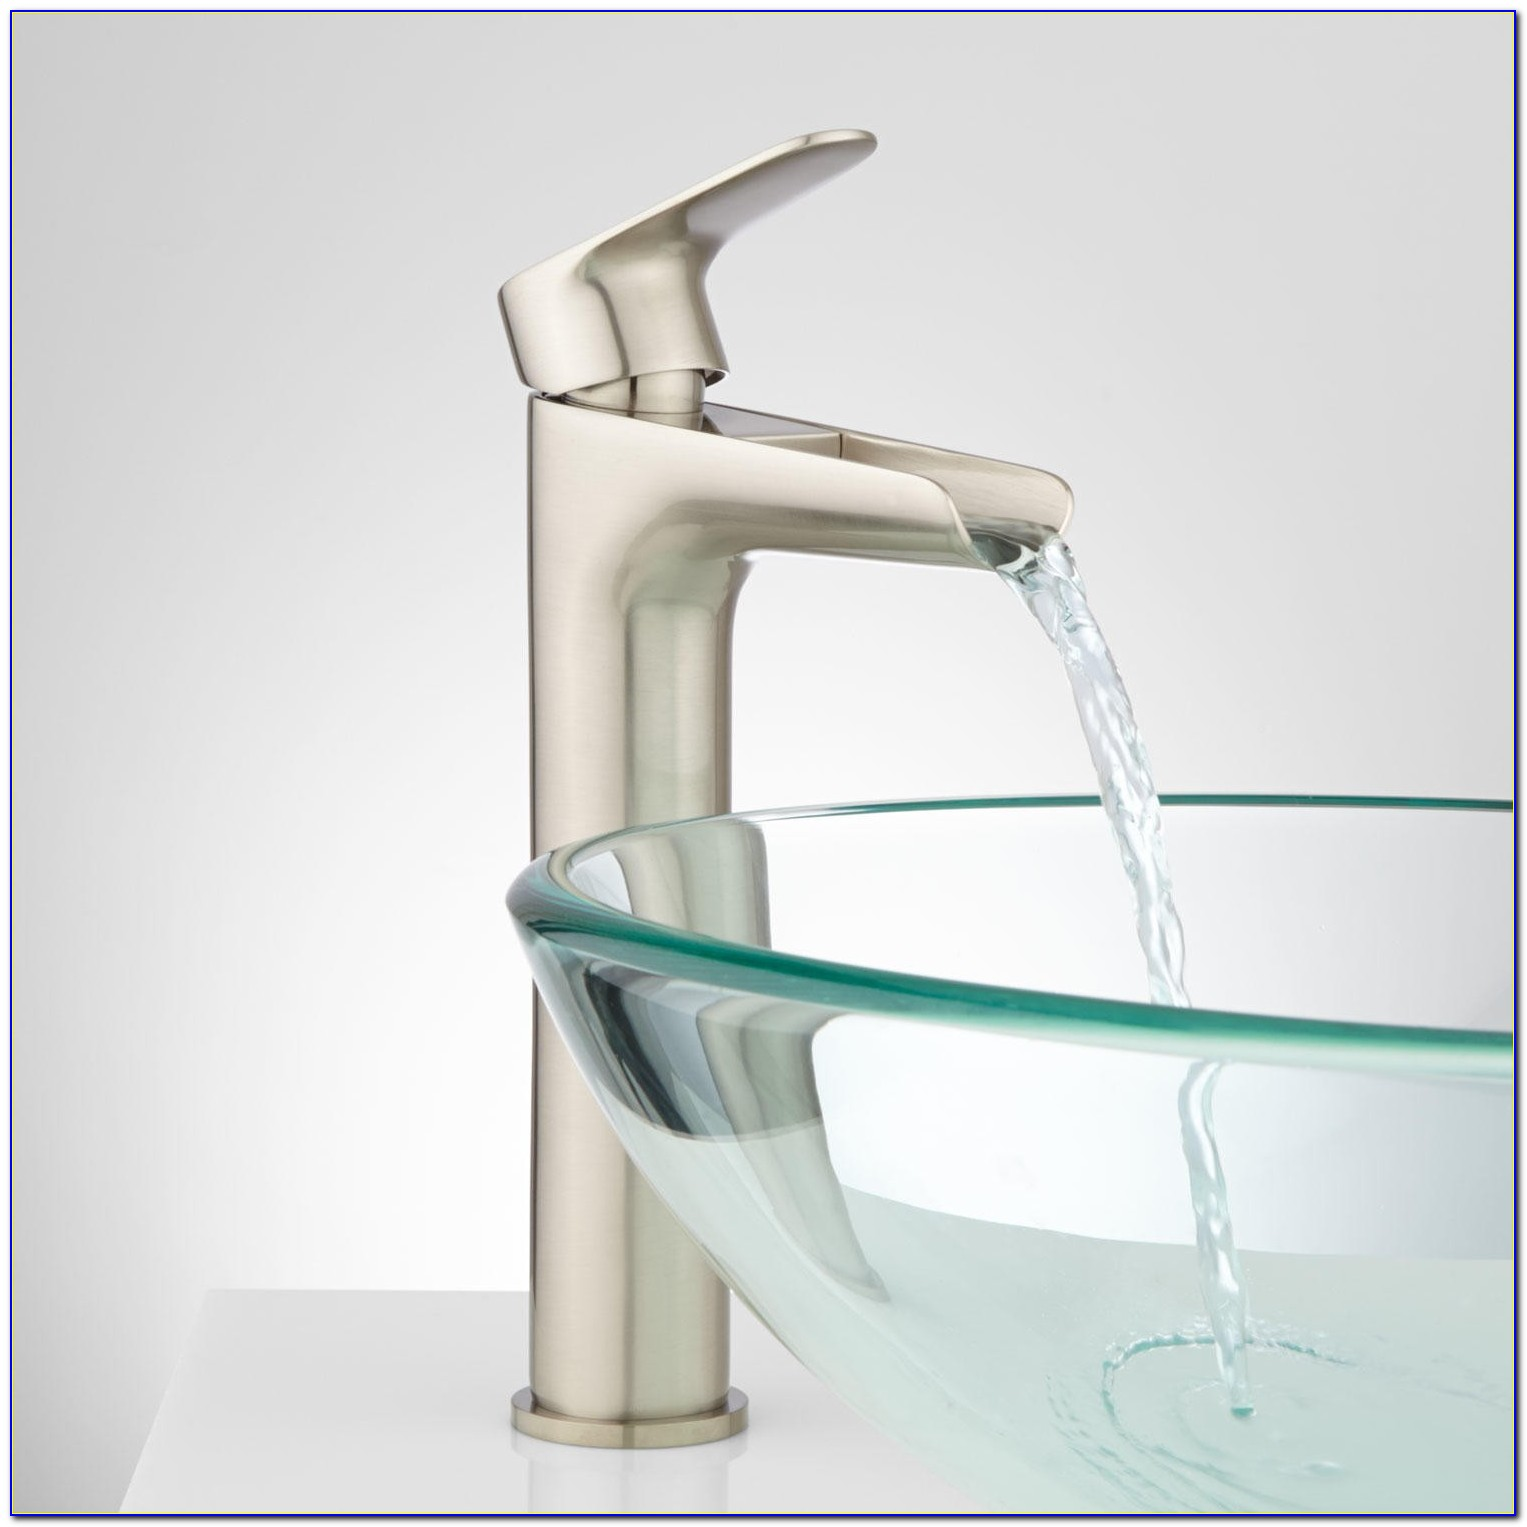 Faucet Installation Undermount Sink